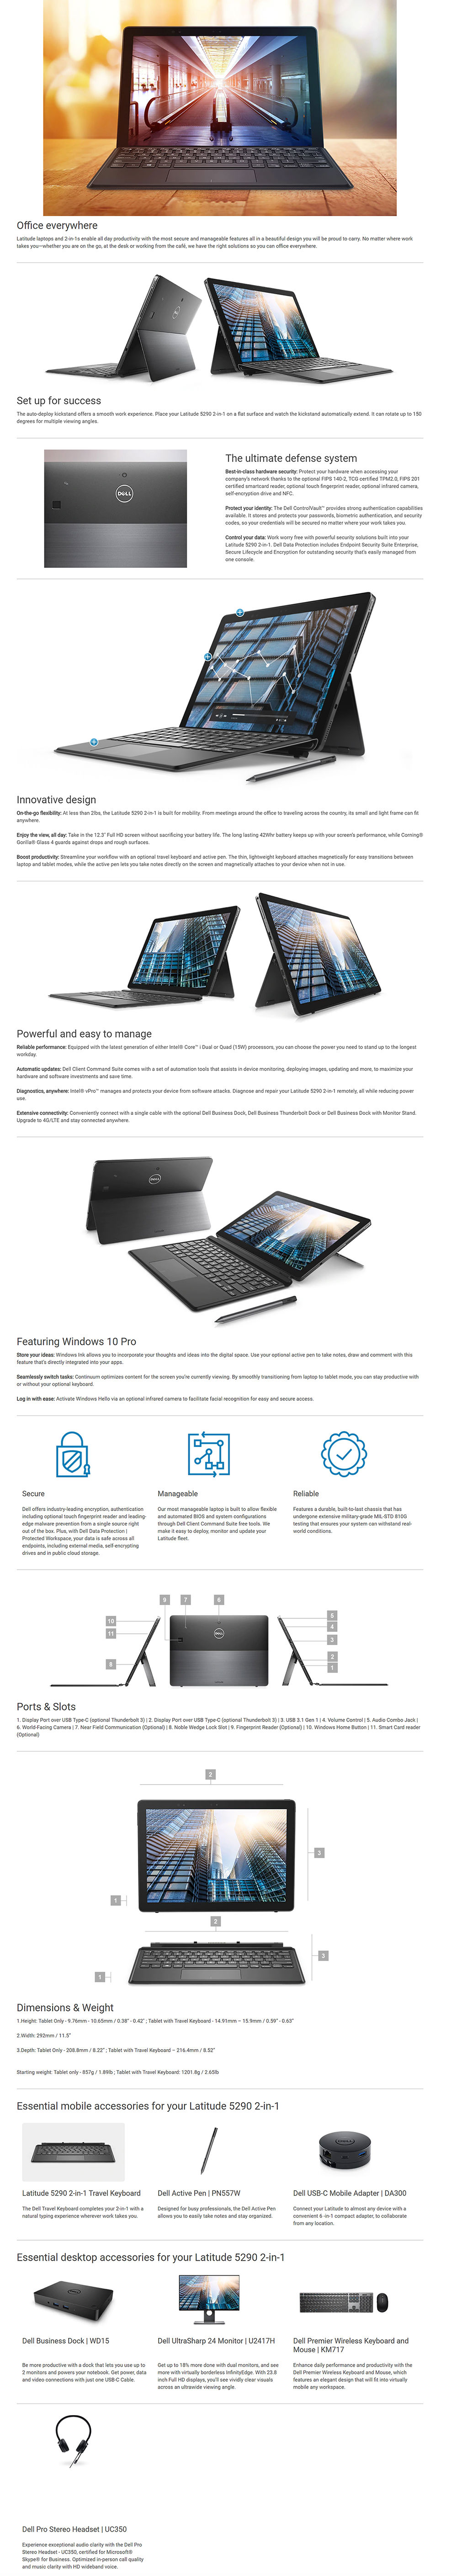 Dell Thunderbolt Software Windows 10